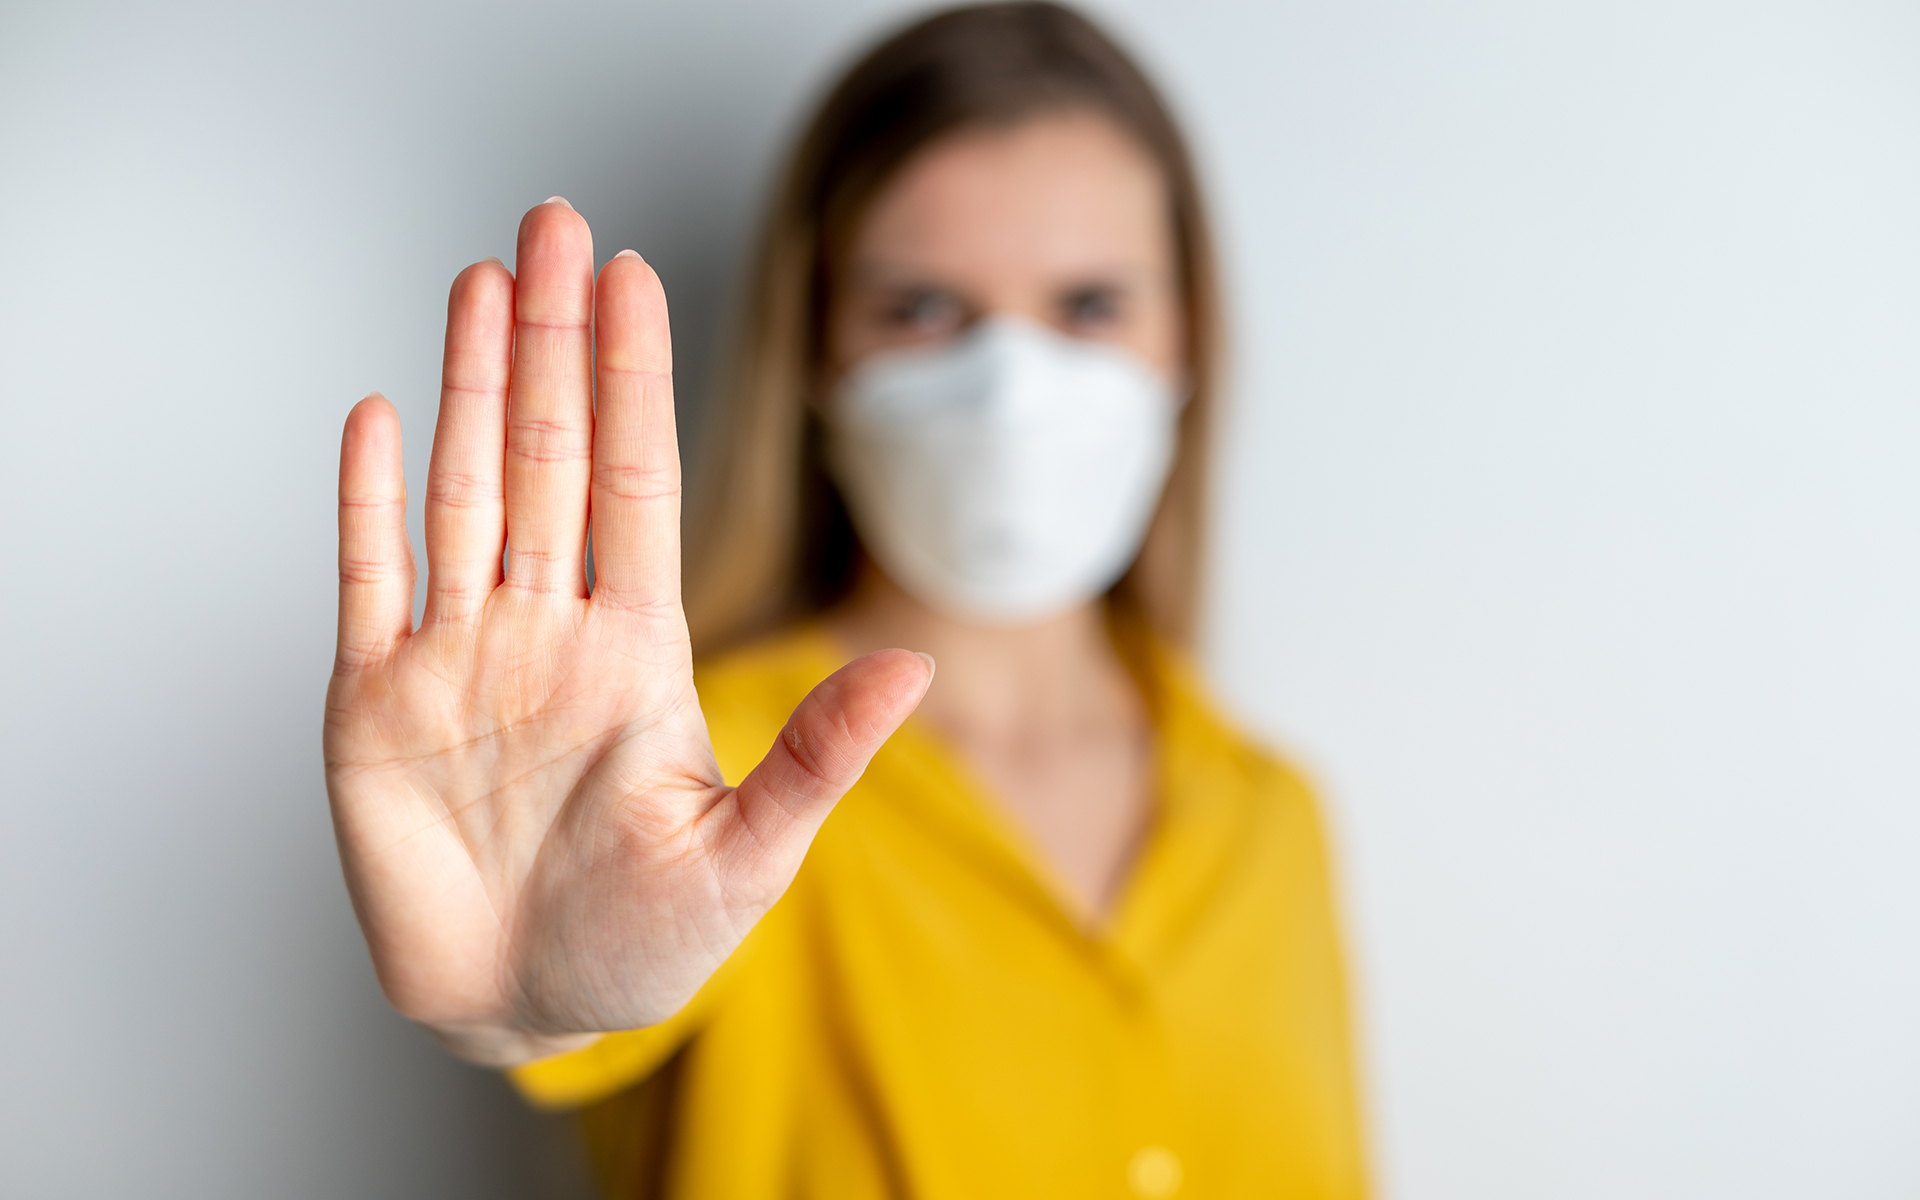 Woman wearing face protection in prevention of coronavirus showing gesture